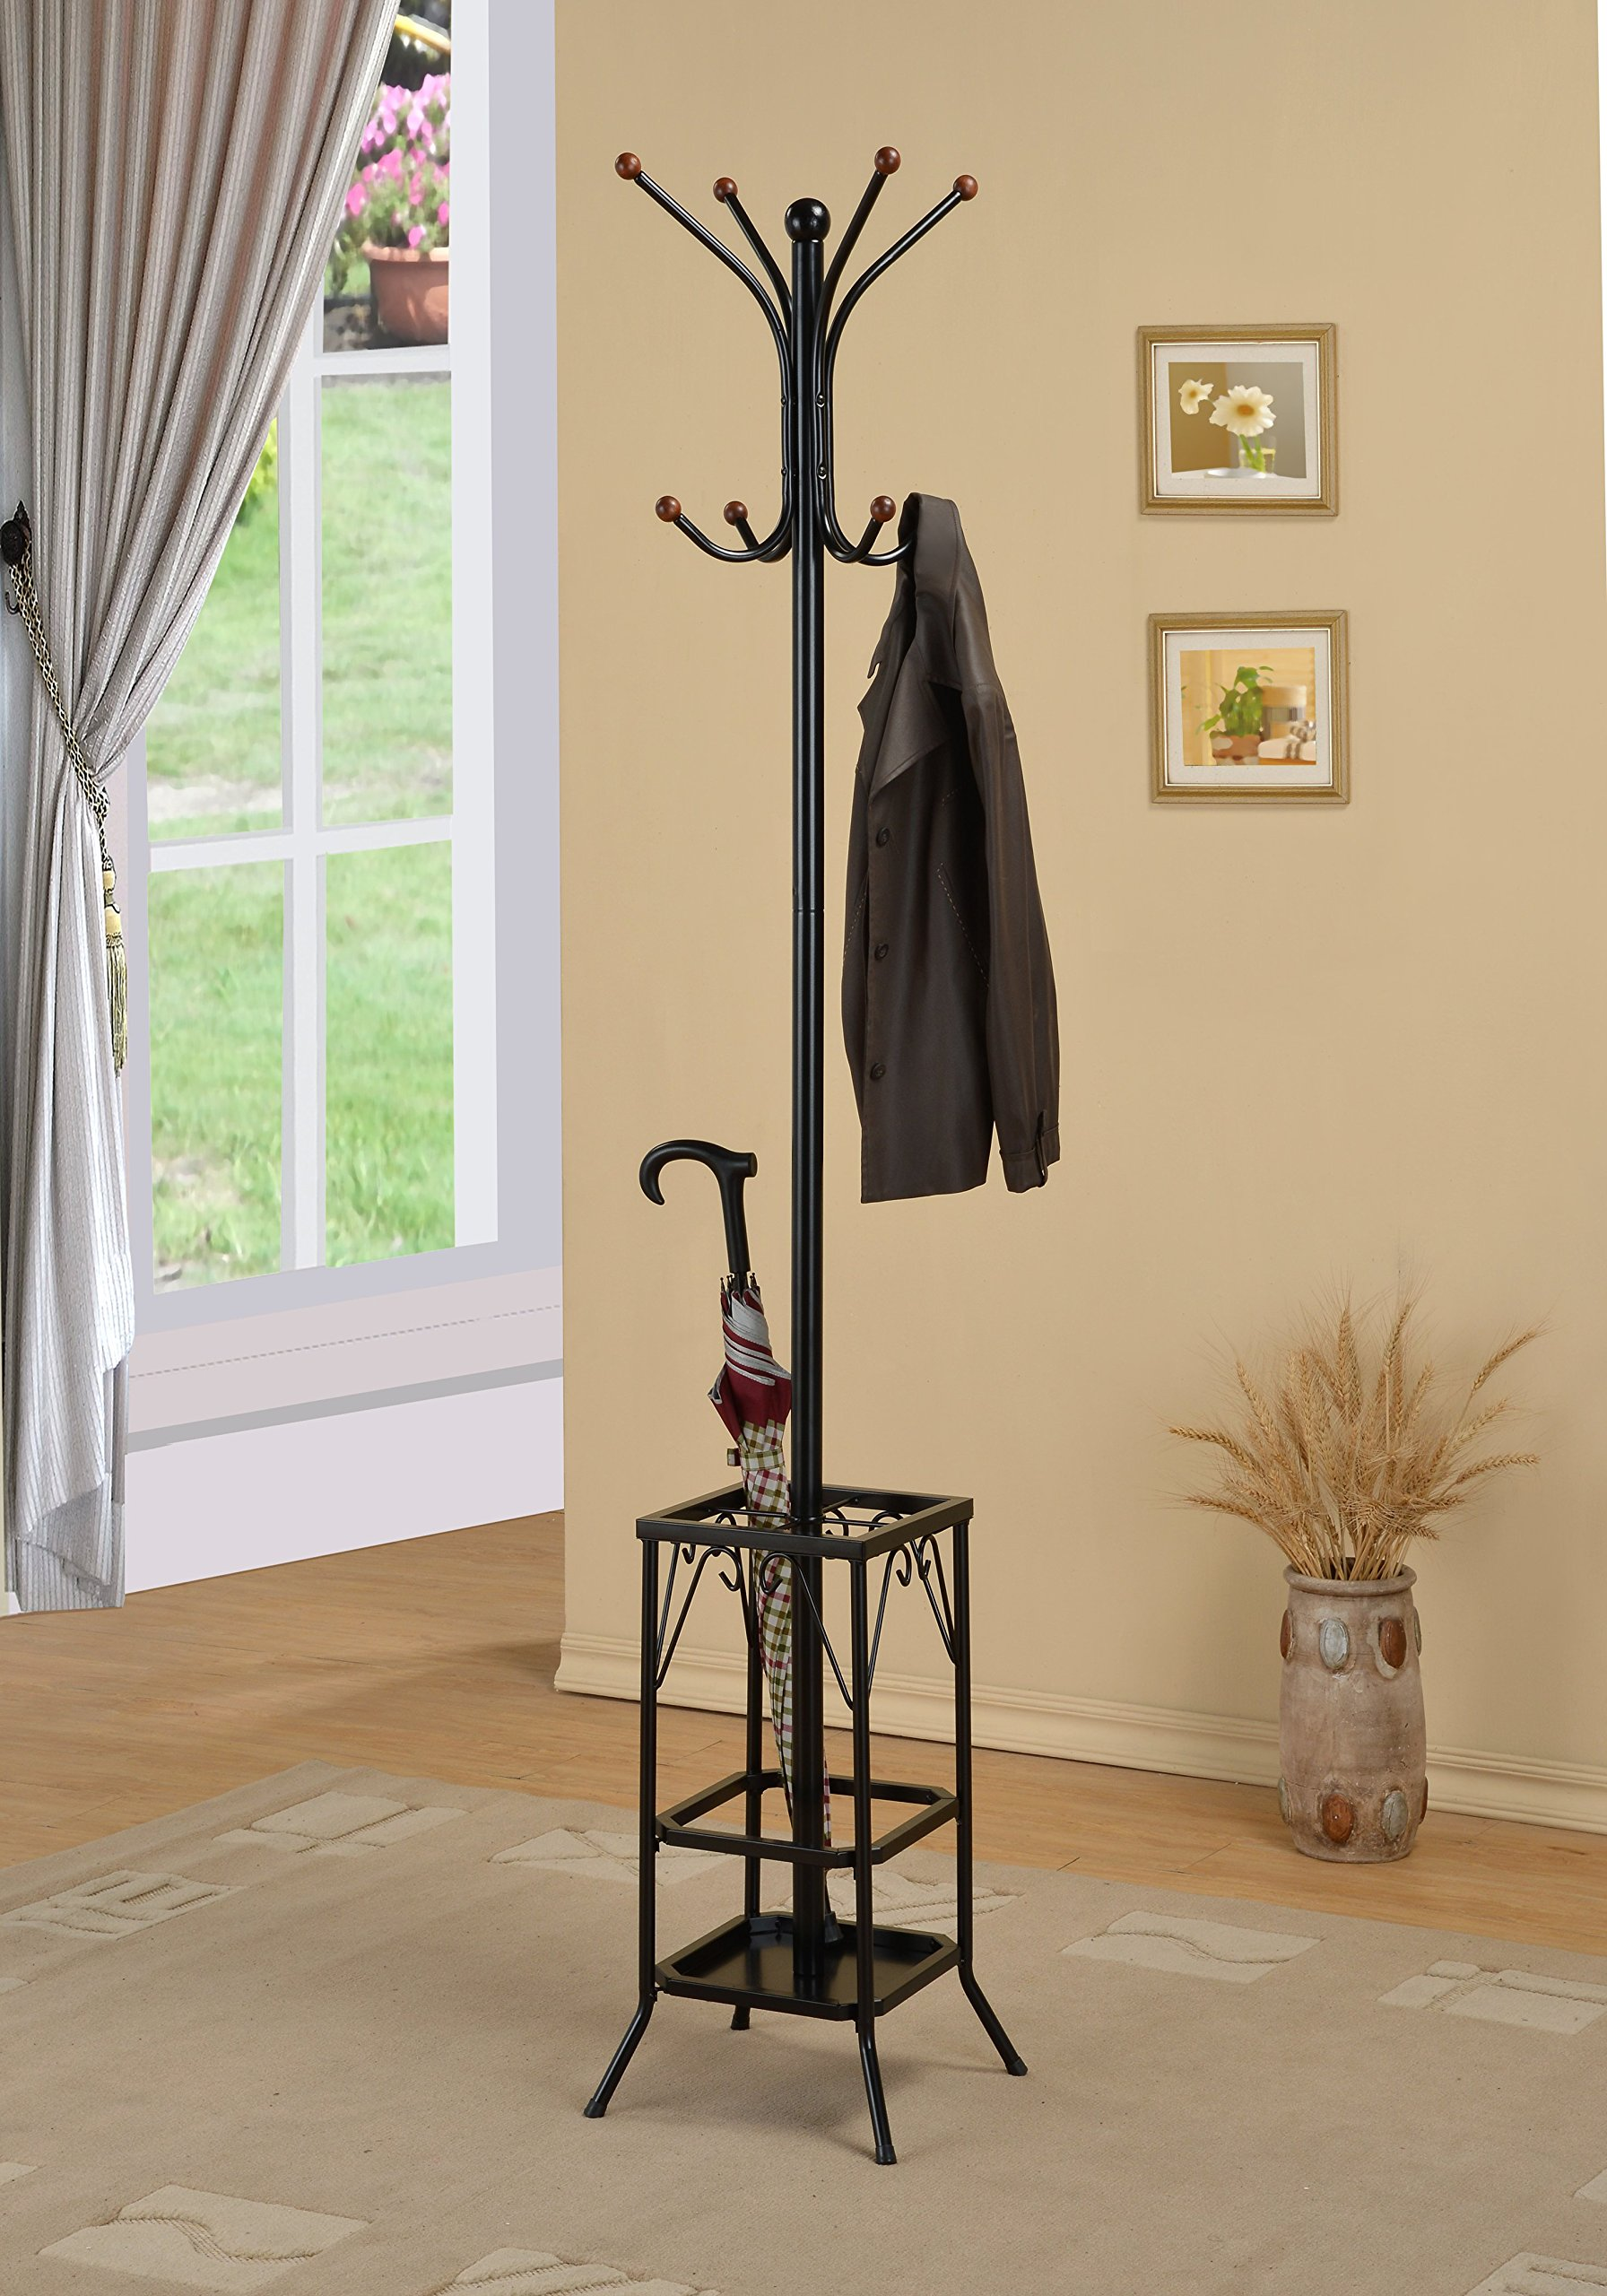 Black Finish Freestanding Standing Metal Coat Hat Purse Rack with Umbrella Holder 8 Hooks